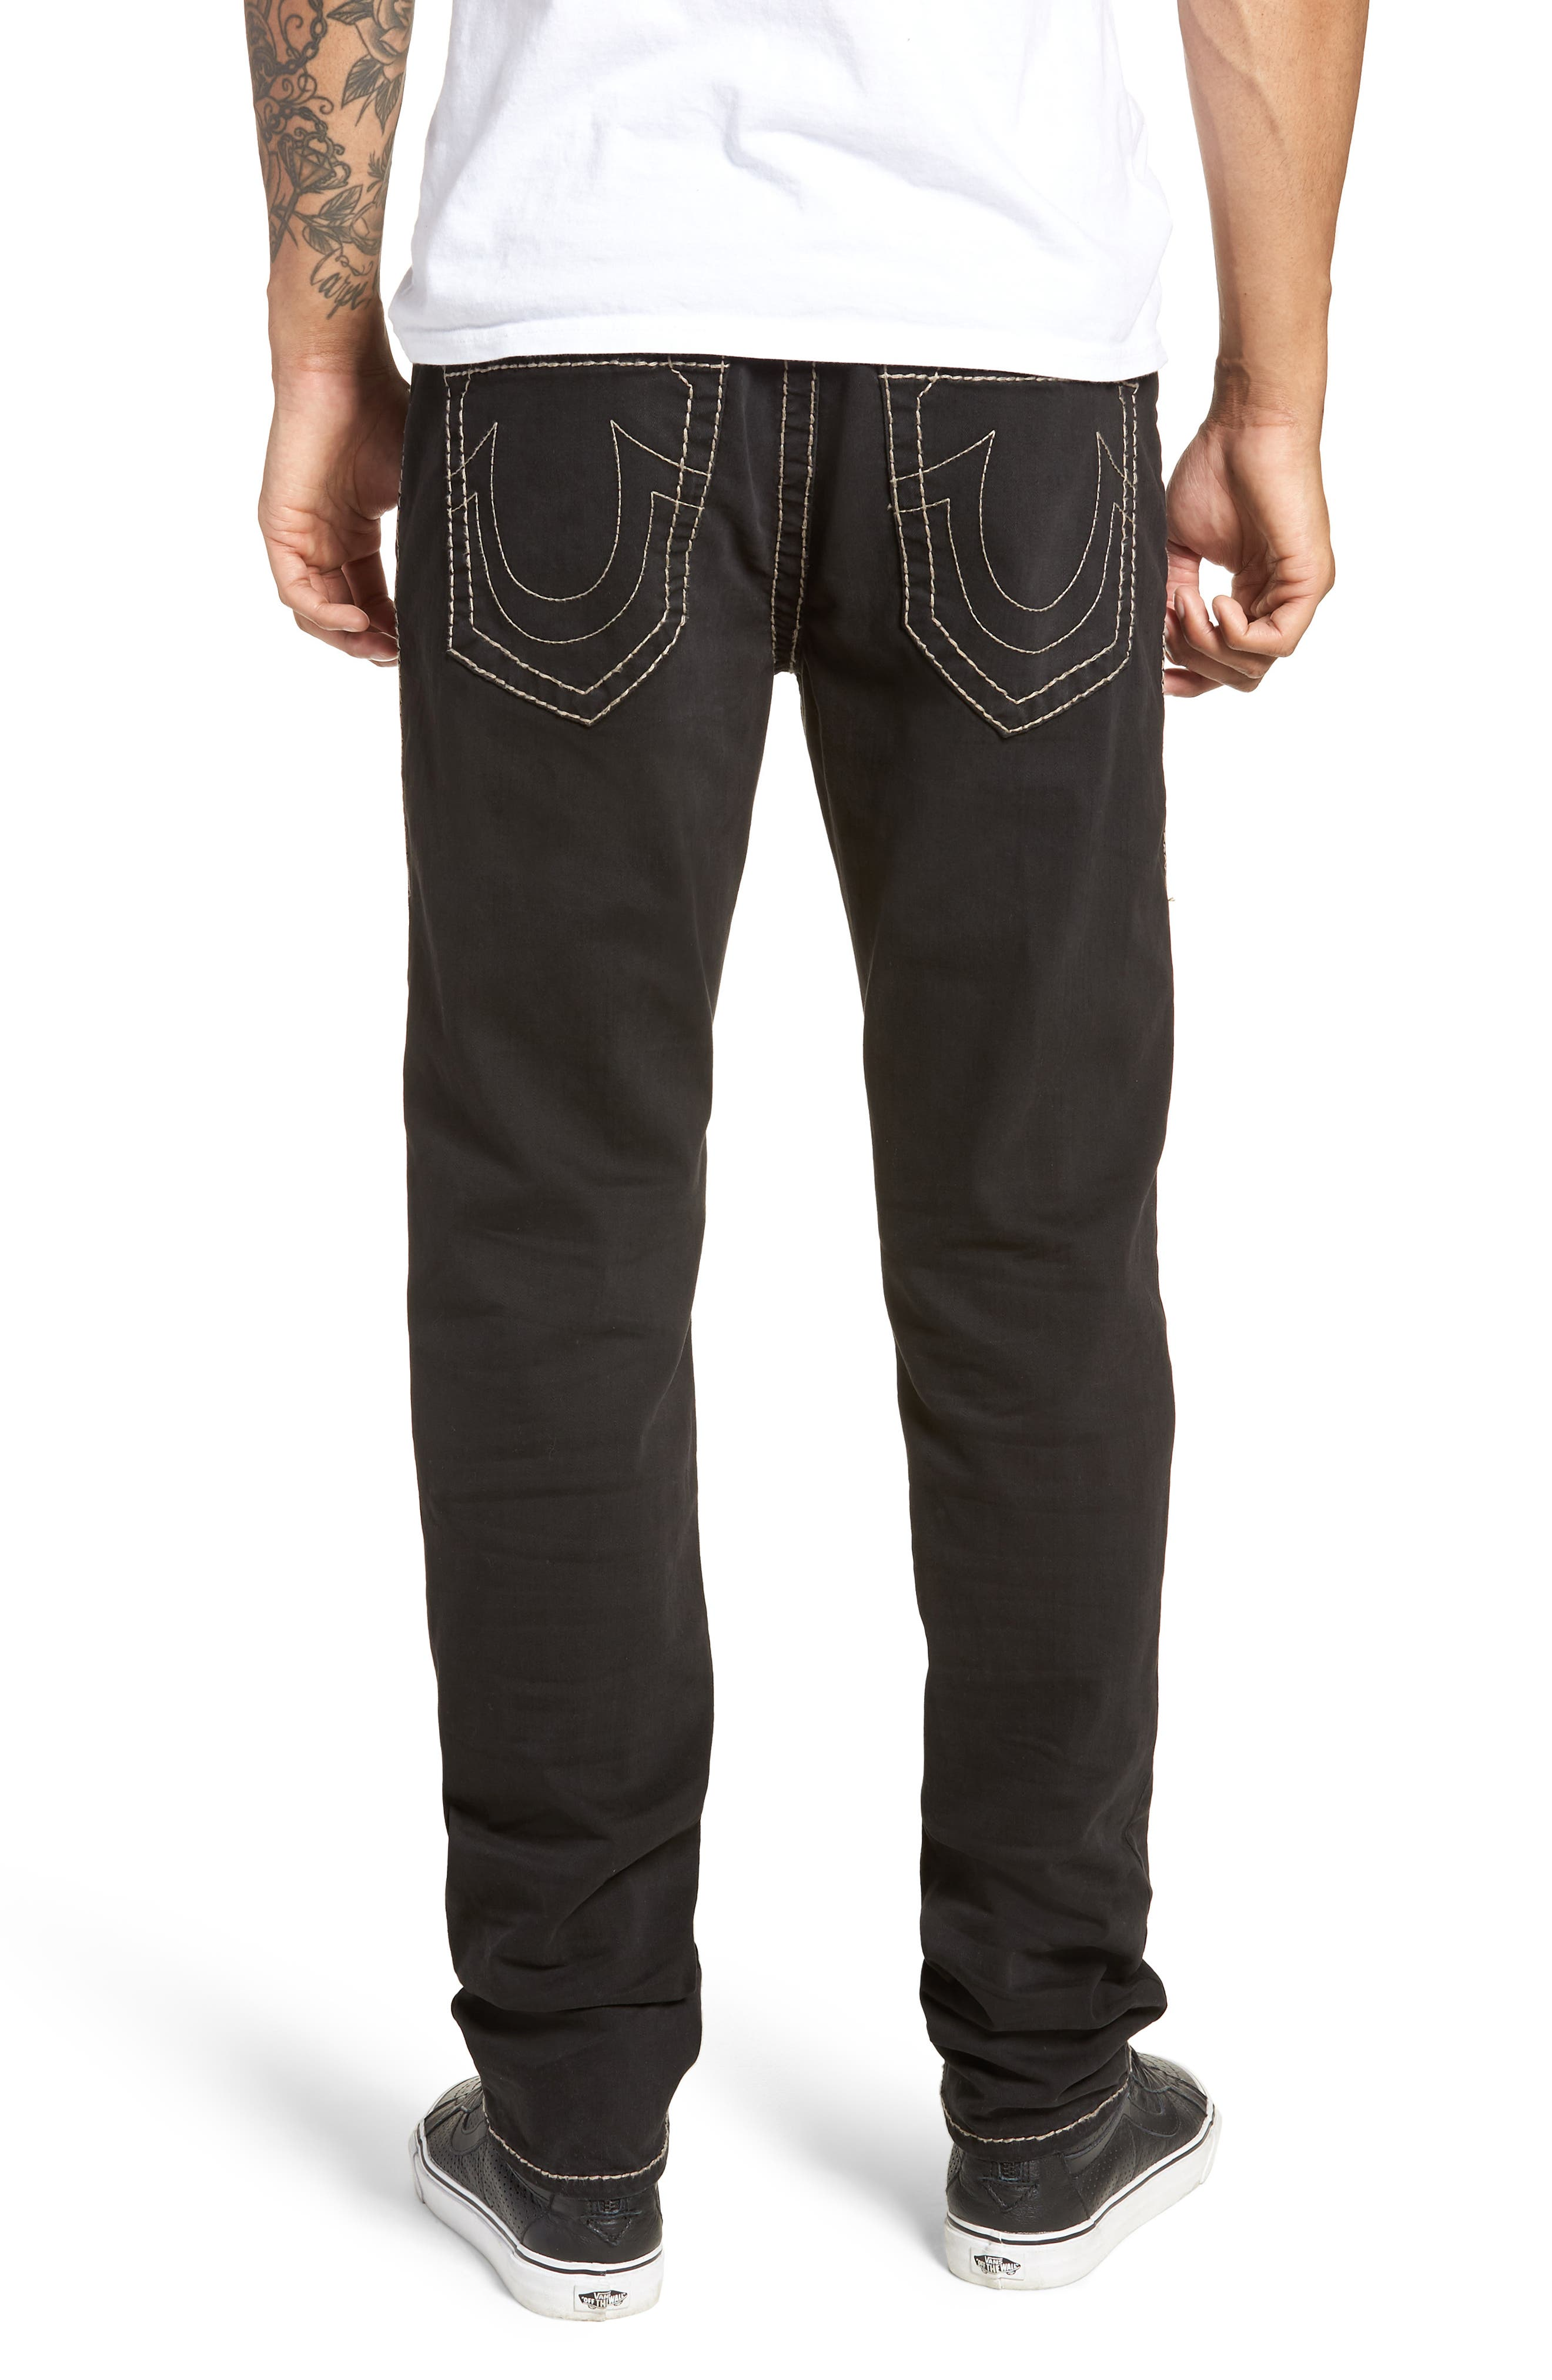 Rocco Skinny Fit Jeans,                             Alternate thumbnail 2, color,                             Black